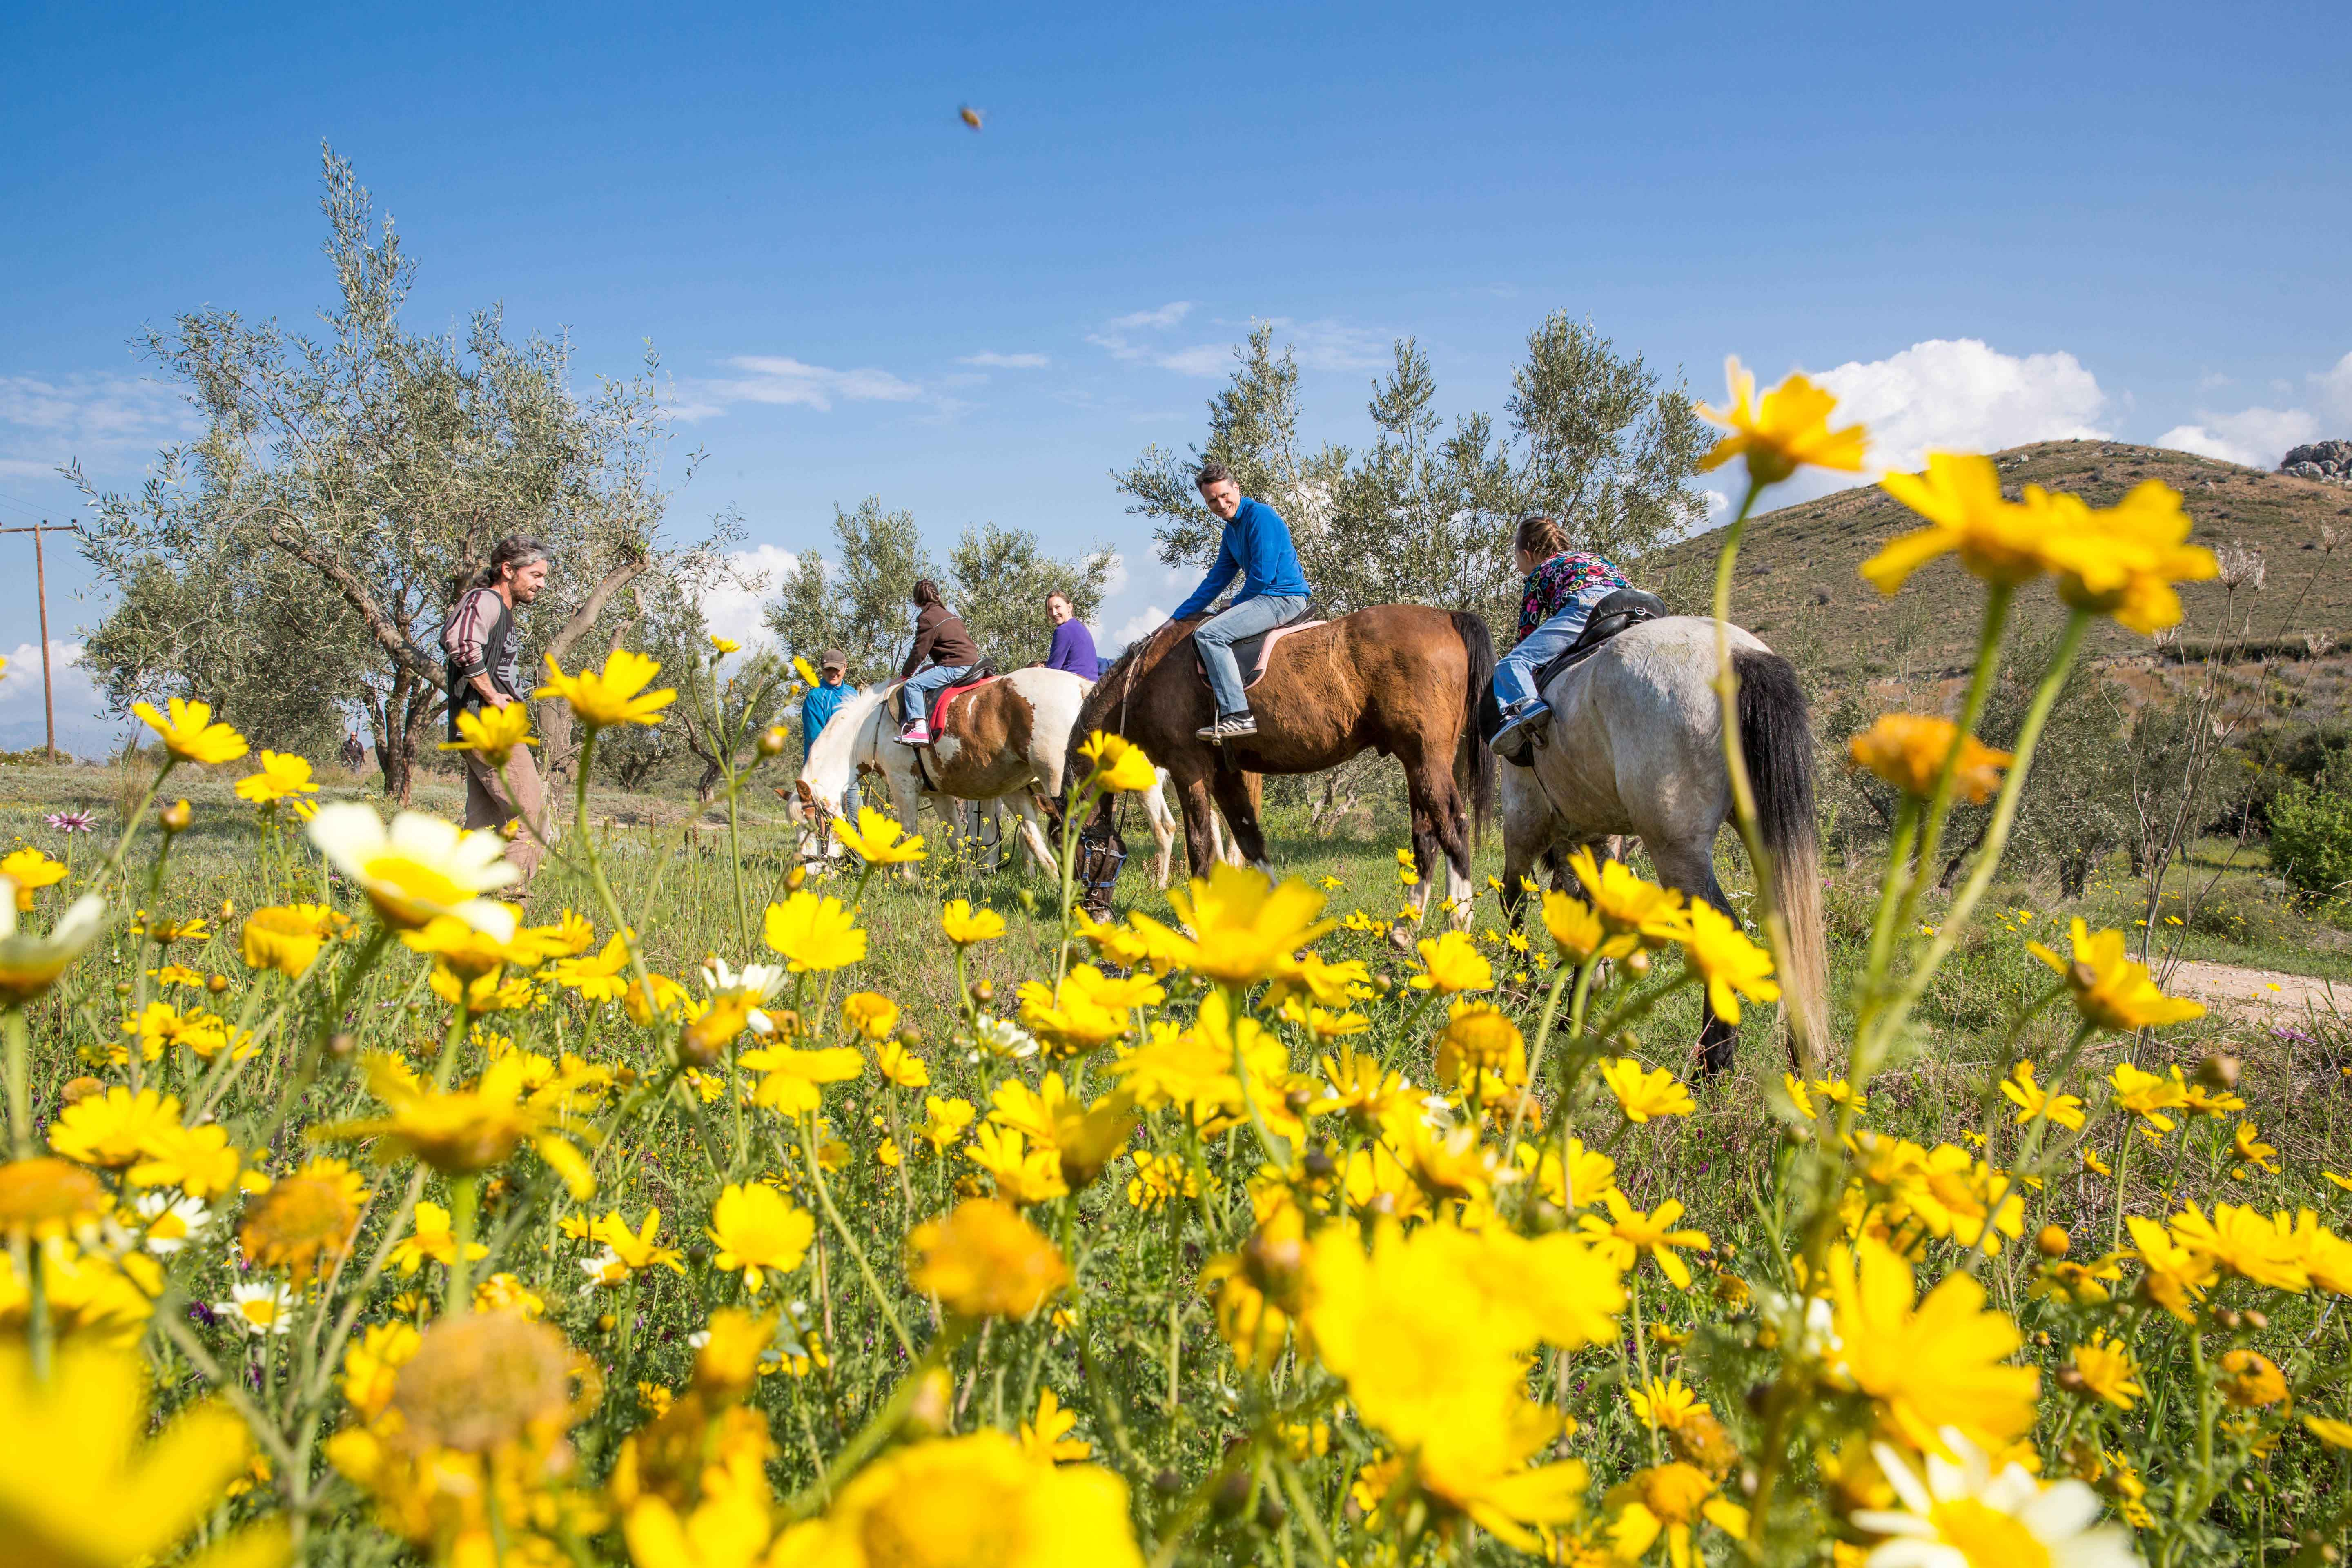 Visit marvelous landscapes up on a horse